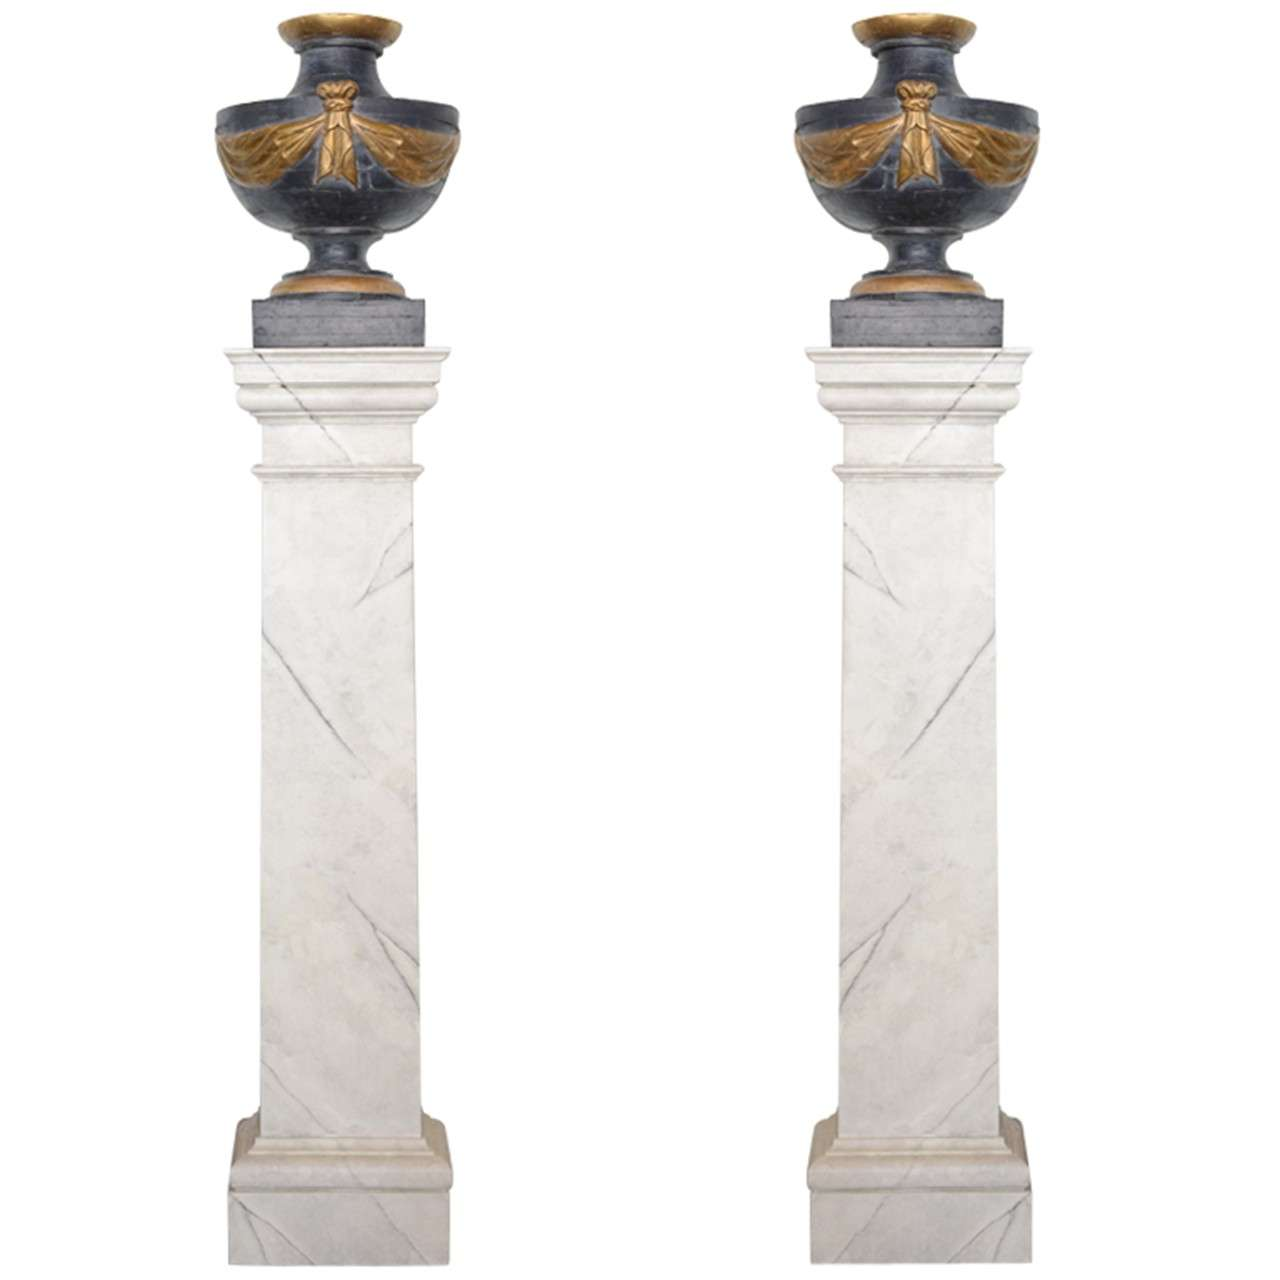 Pair of Italian Neoclassic Painted and Parcel-Gilt Urns on Pedestals